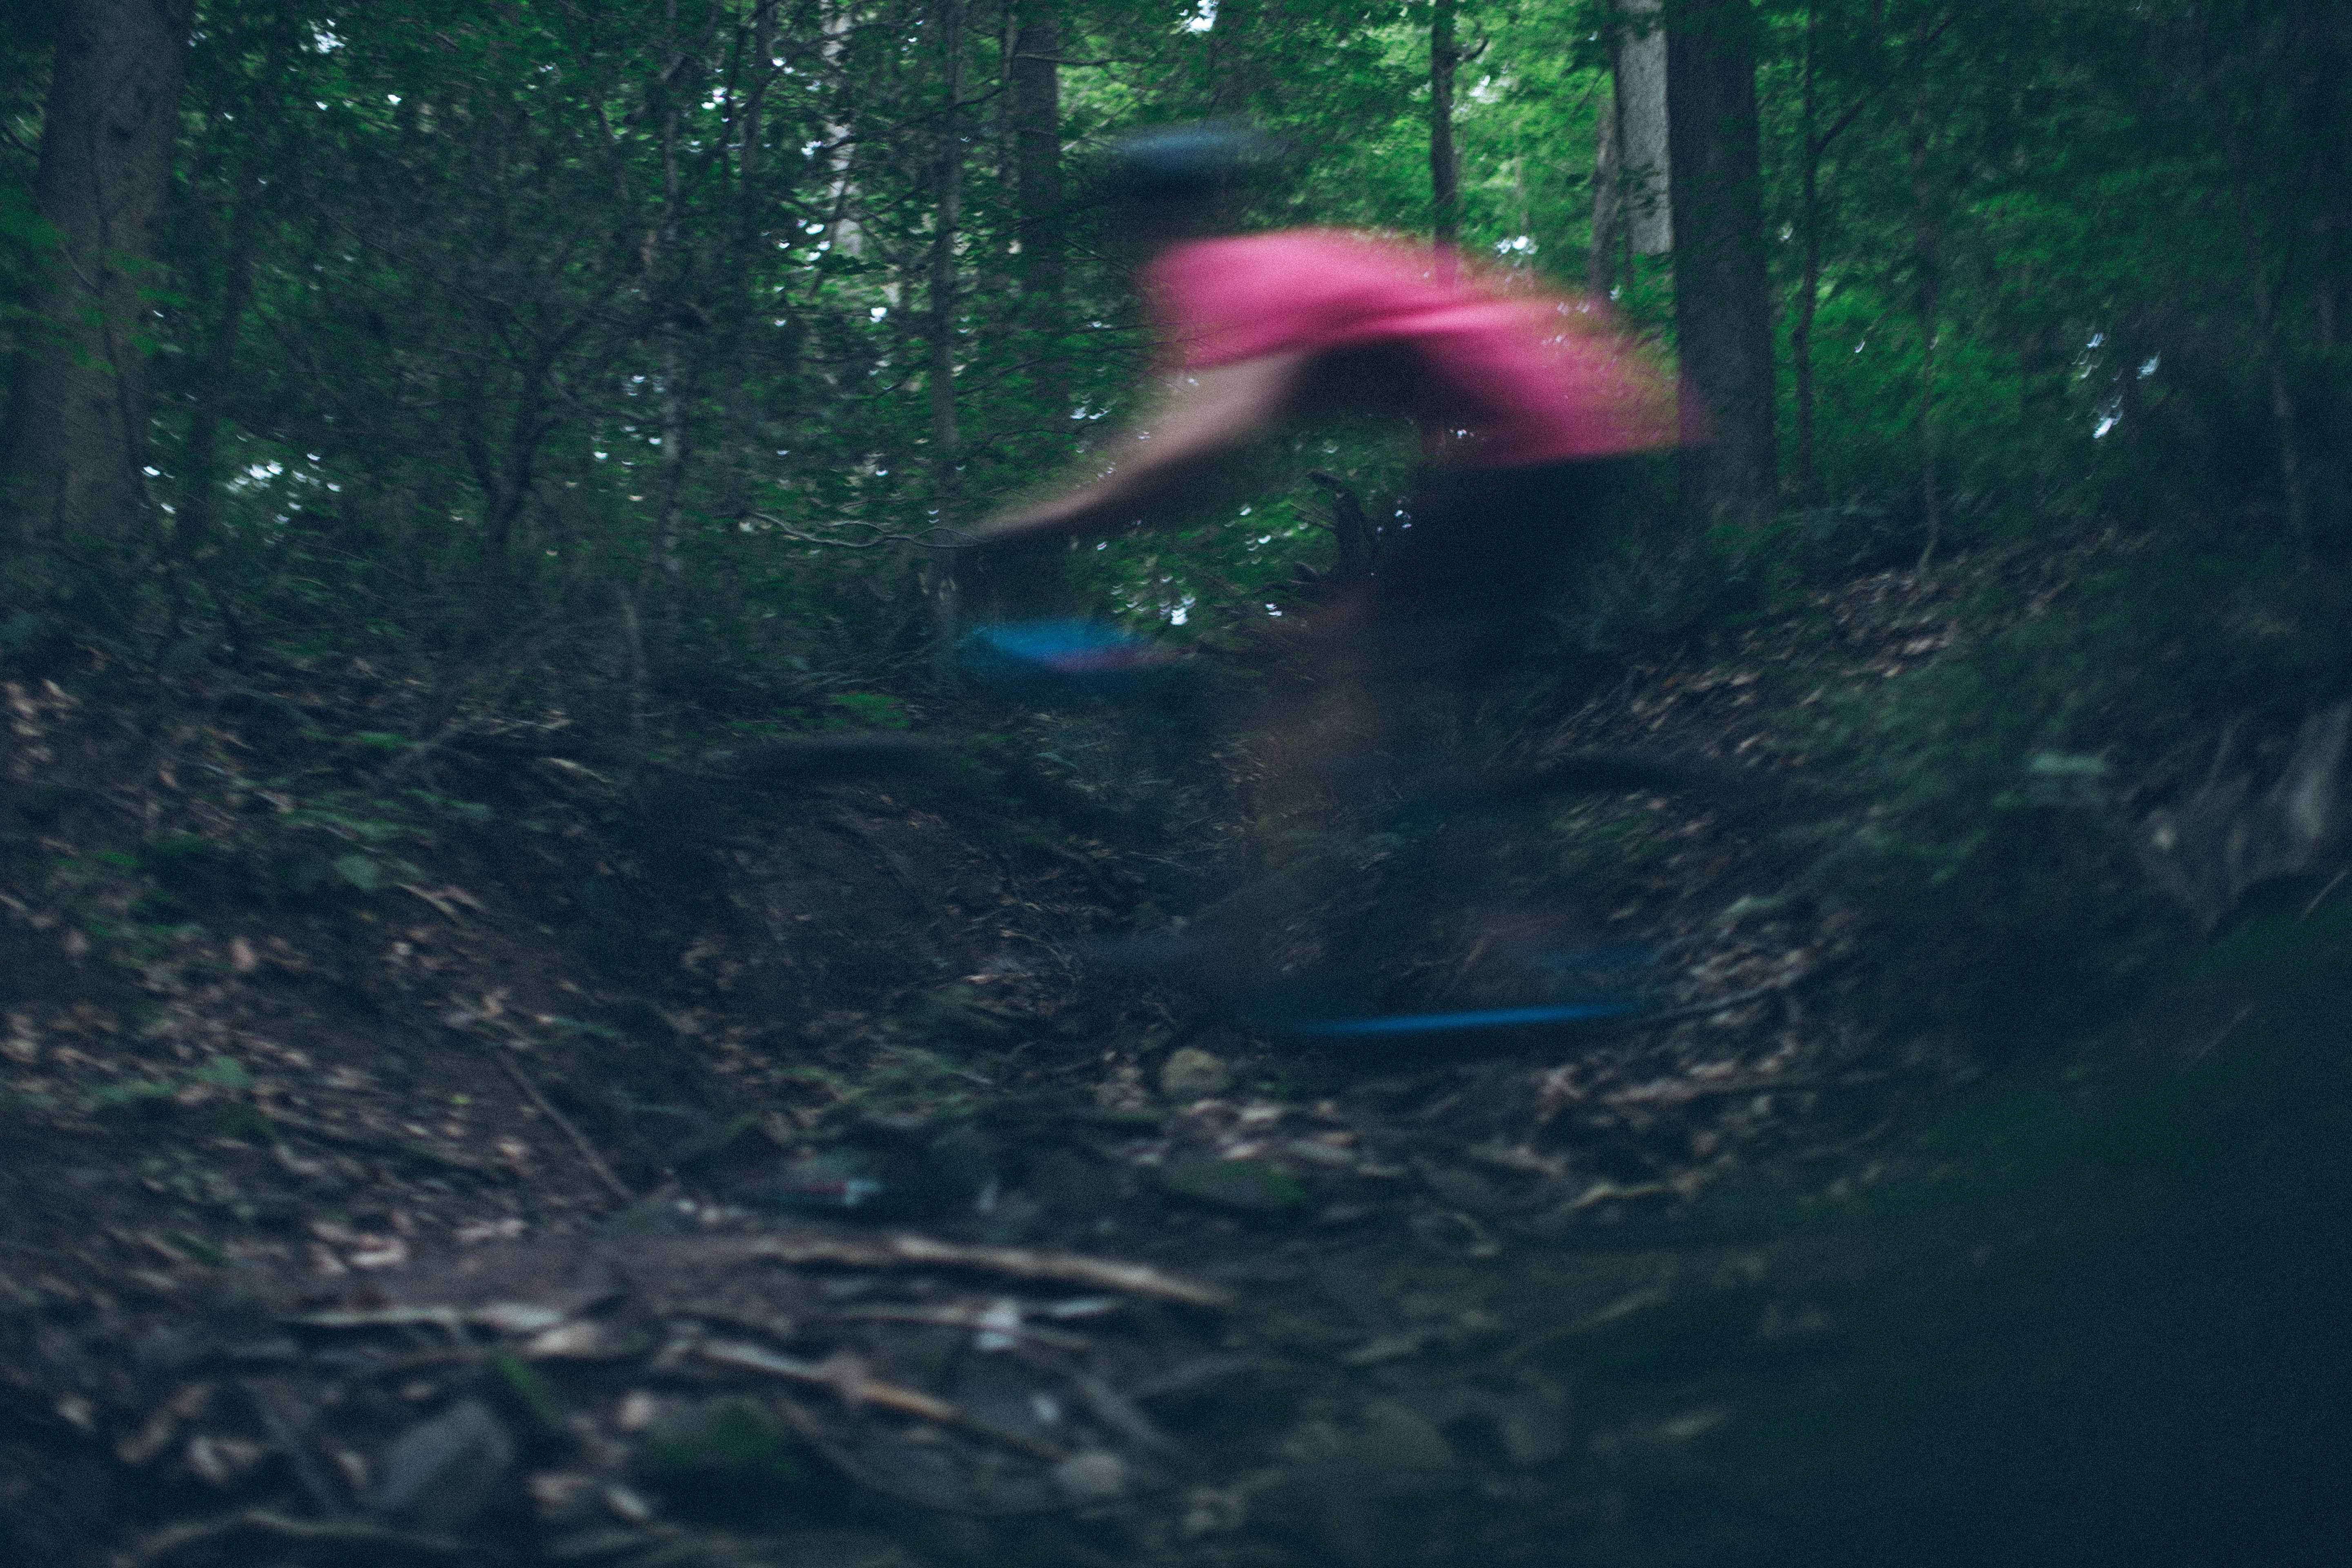 person riding on bicycle in forest